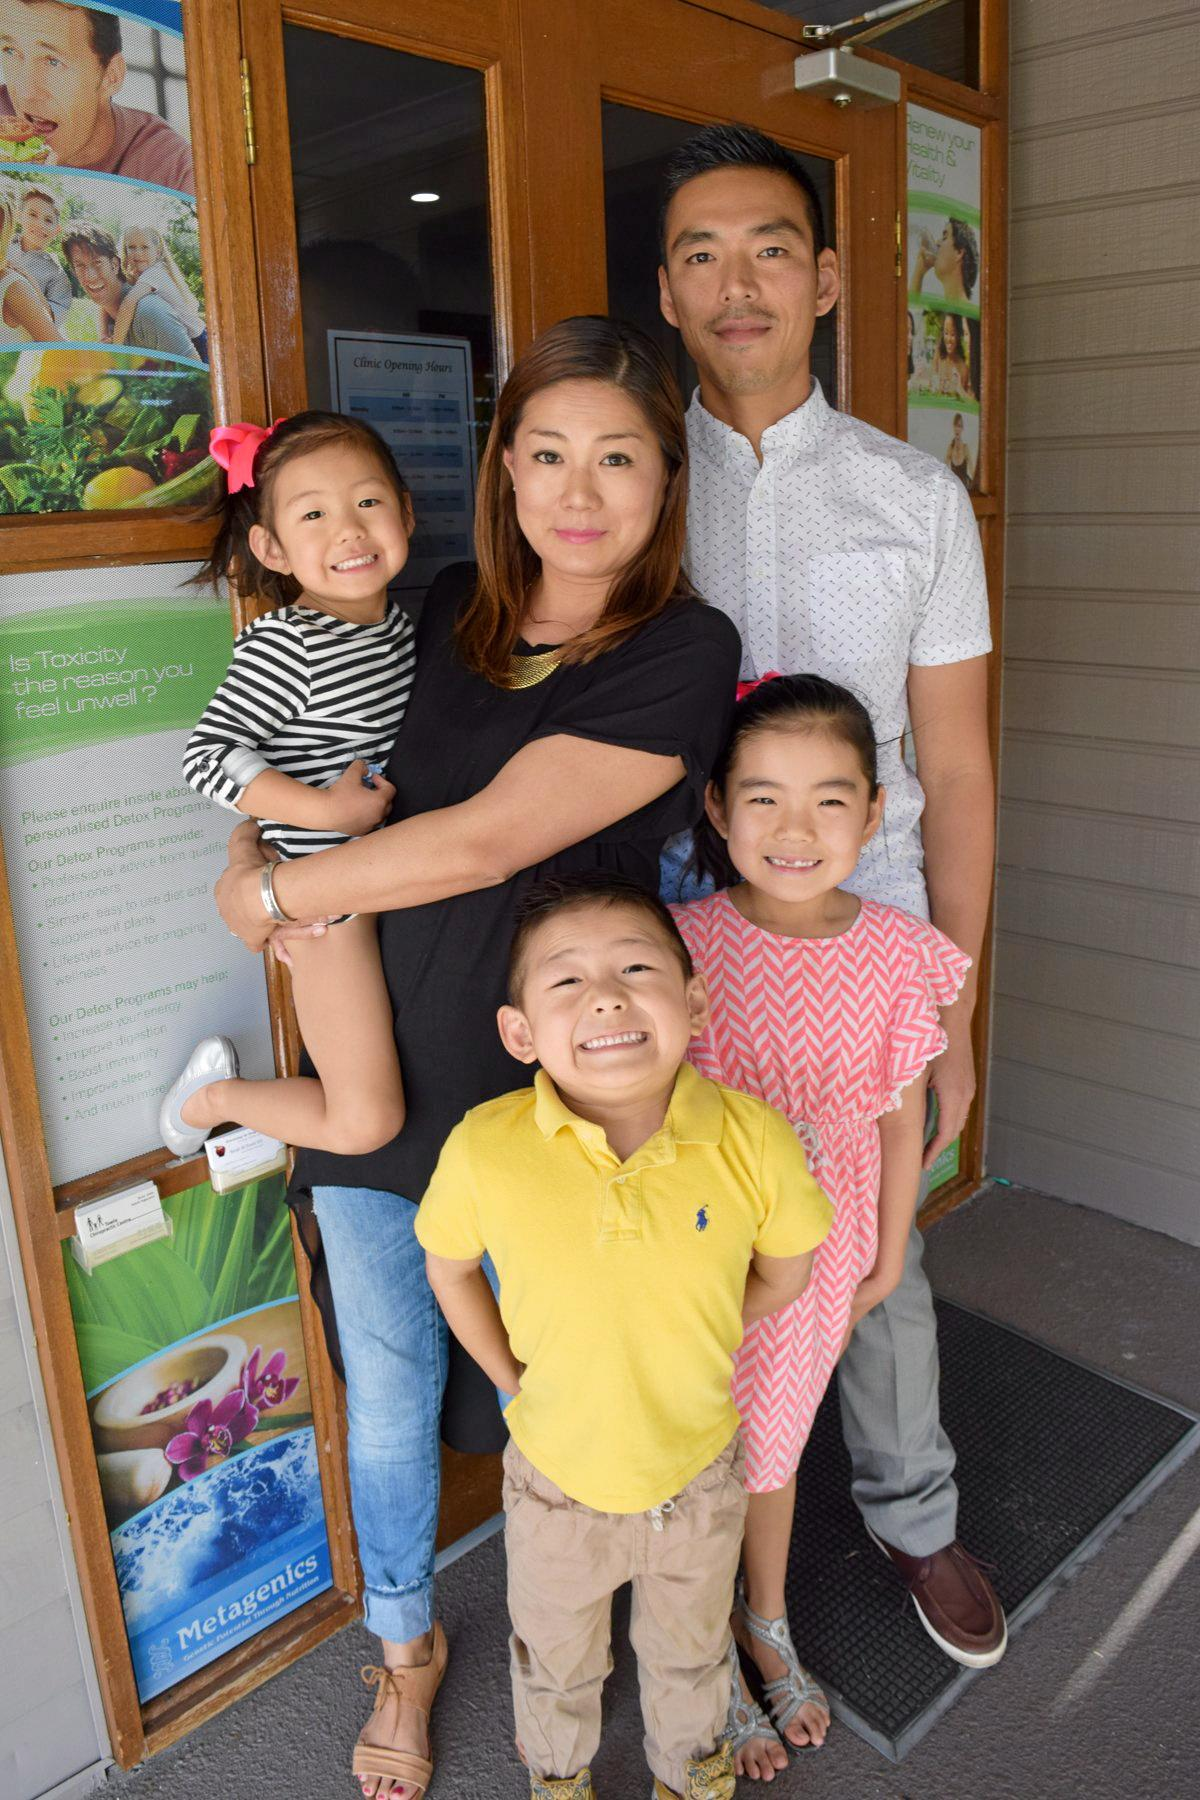 NEW CHIRO: Yeppoon's Towle Chiropractic Centre introduces their new Chiropractor Keiichi Kageyama. Pictured with his wife Aya and children form left, Mirai, Shion and Mai.